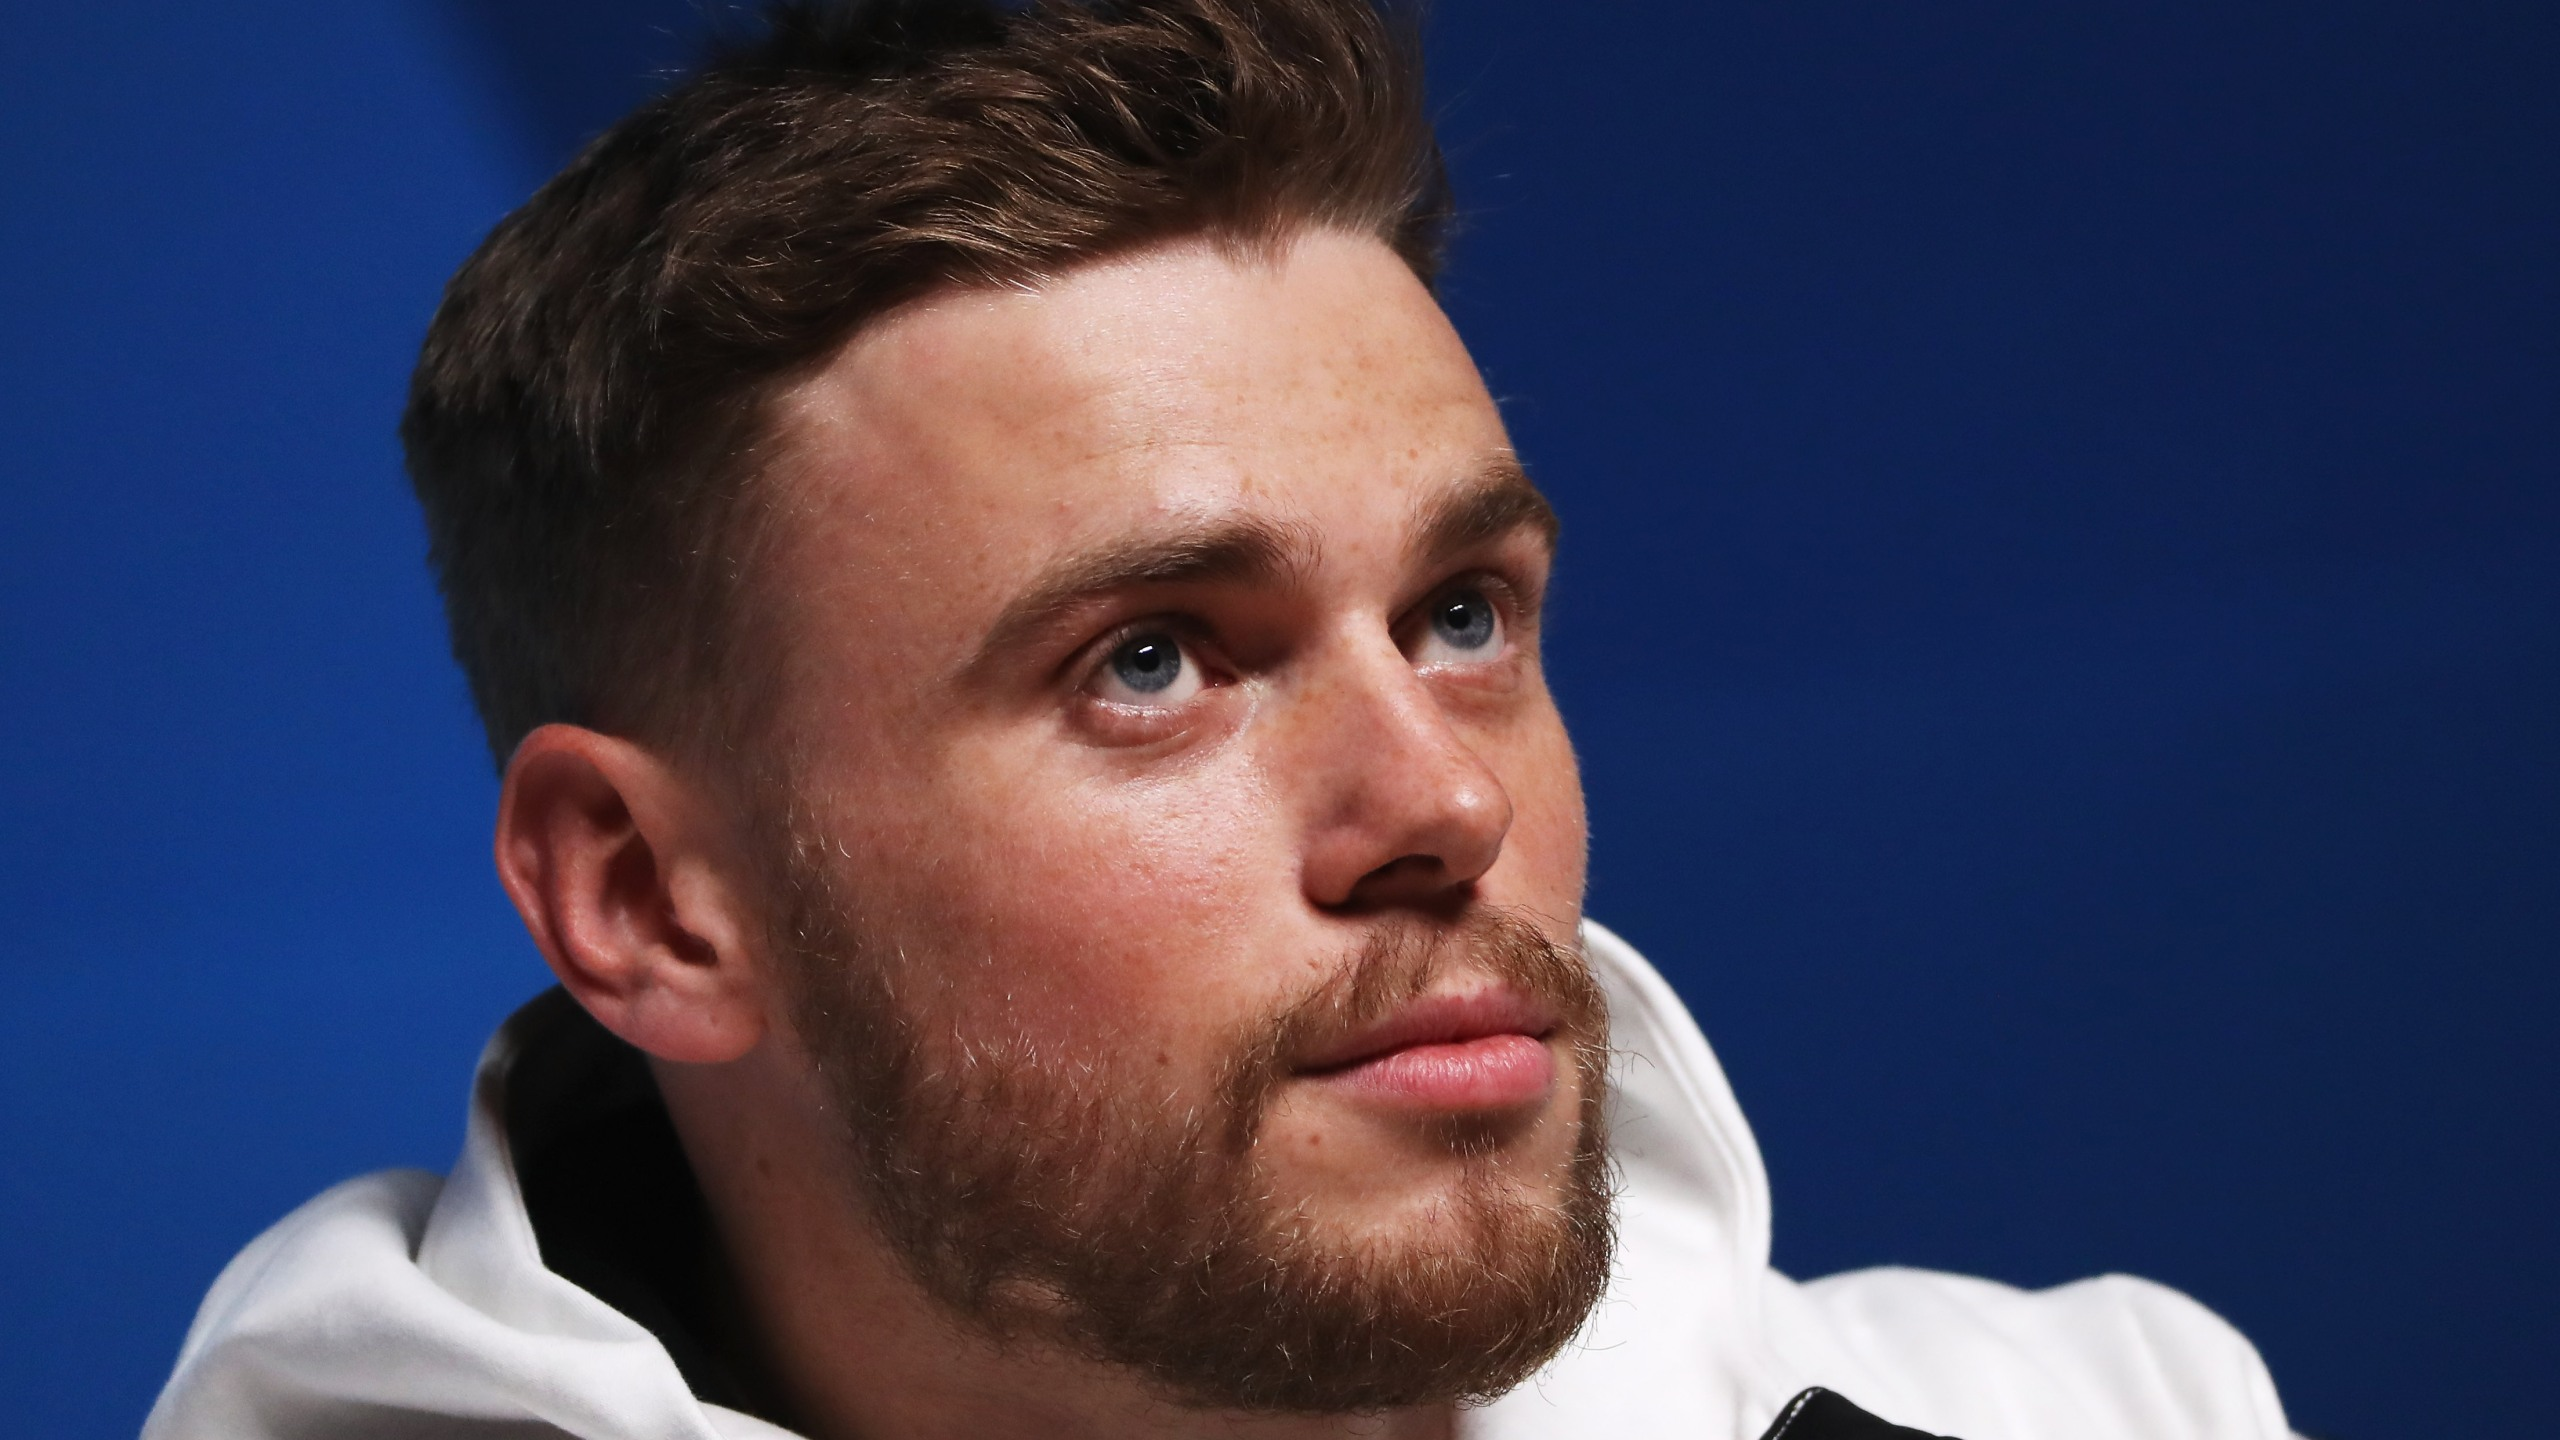 United States freestyle skier Gus Kenworthy answers questions at a press conference during the PyeongChang 2018 Winter Olympics on Feb. 11, 2018. (Credit: Ker Robertson / Getty Images)